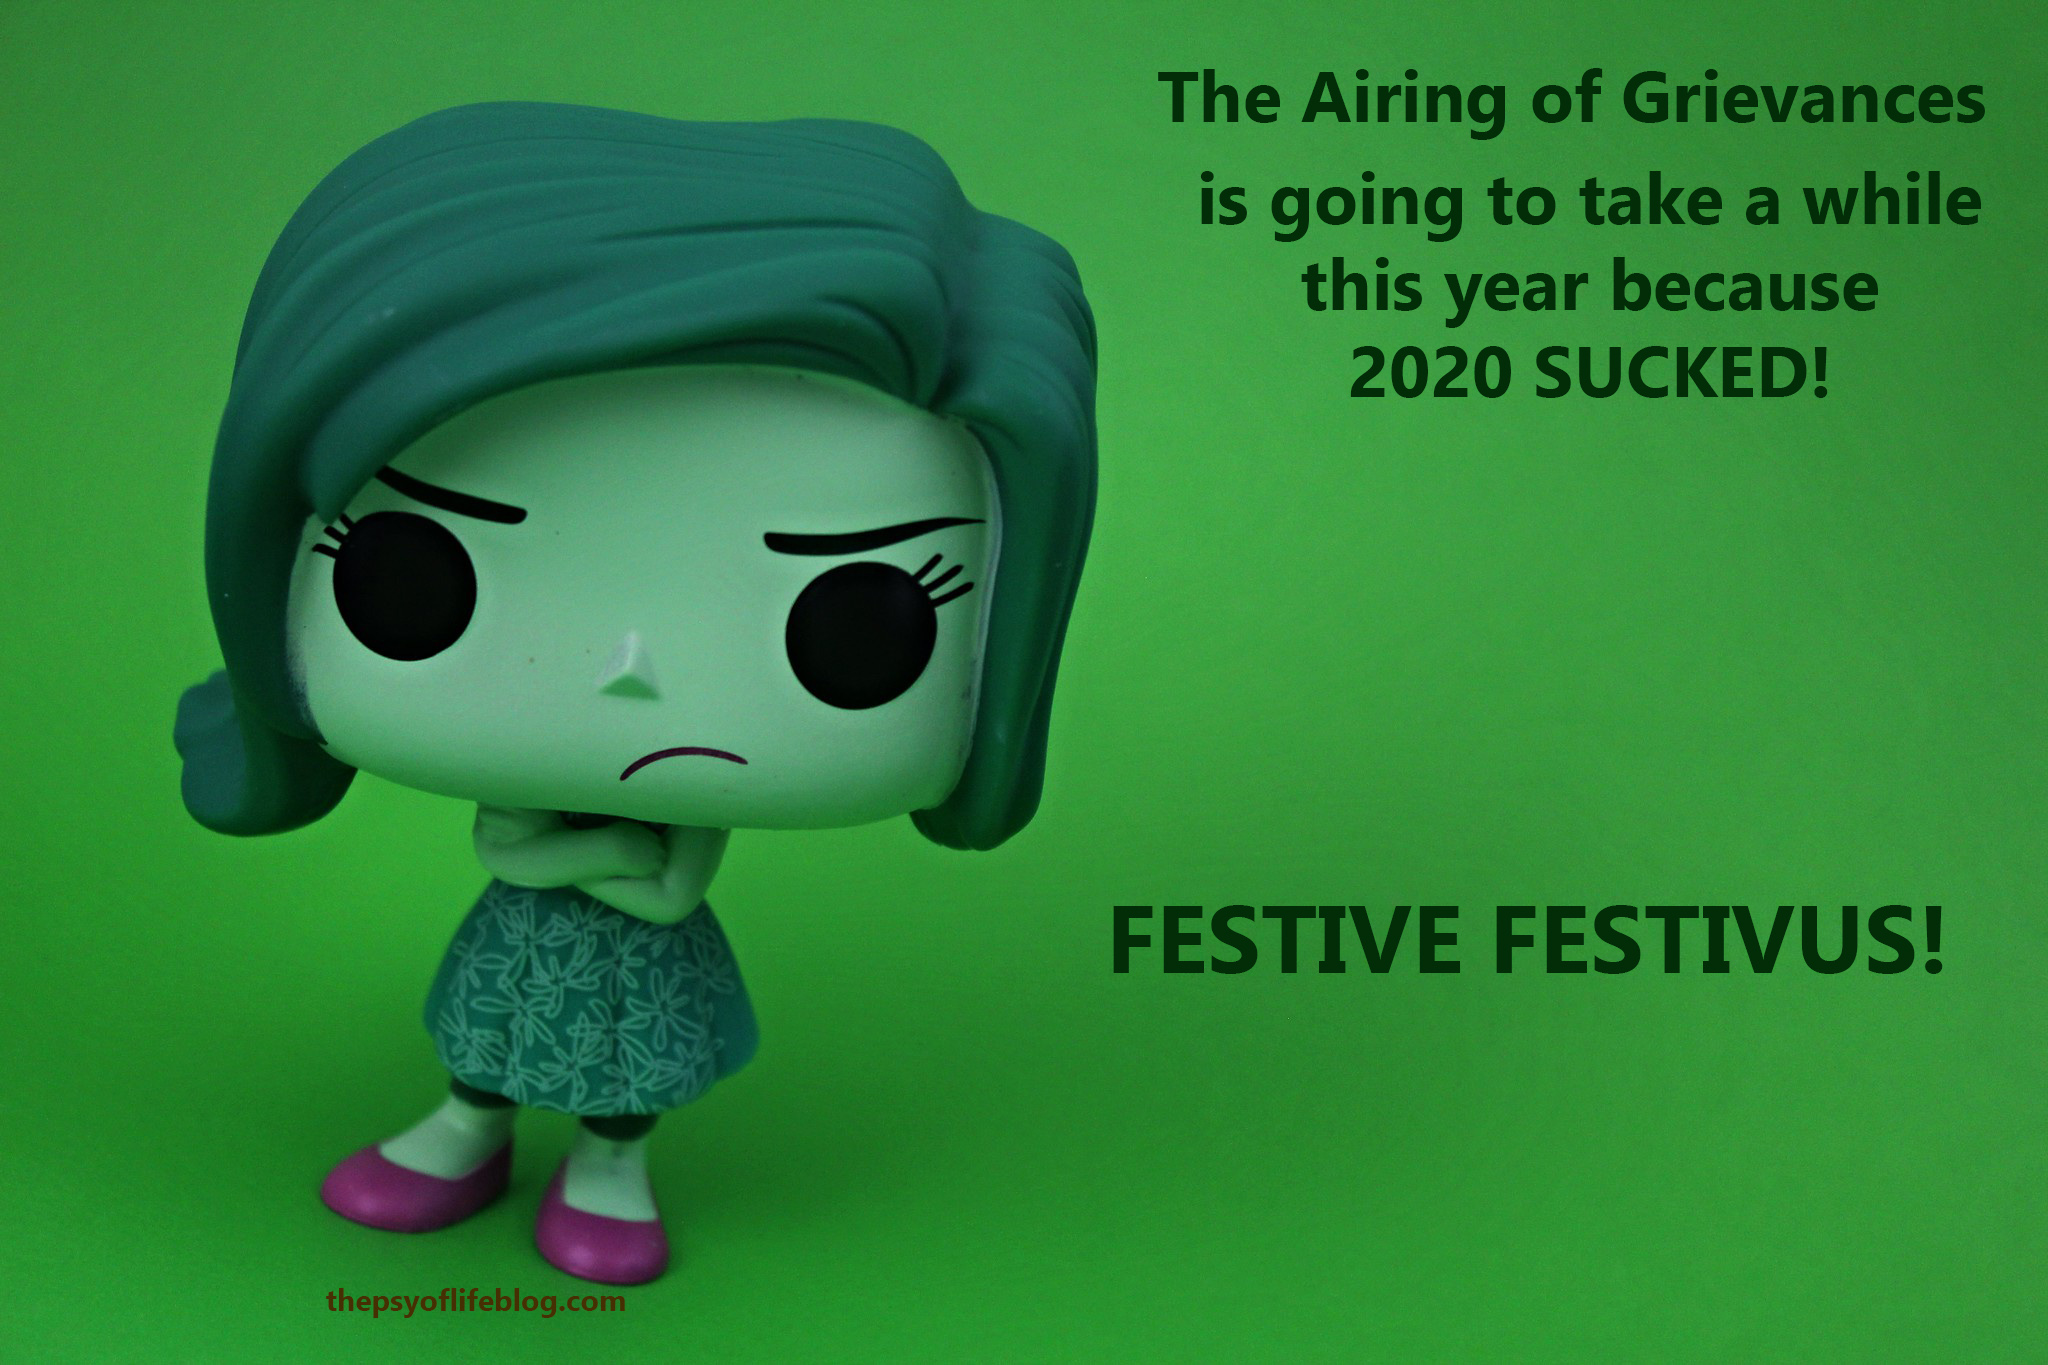 Festivus Card: 2020 SUCKED